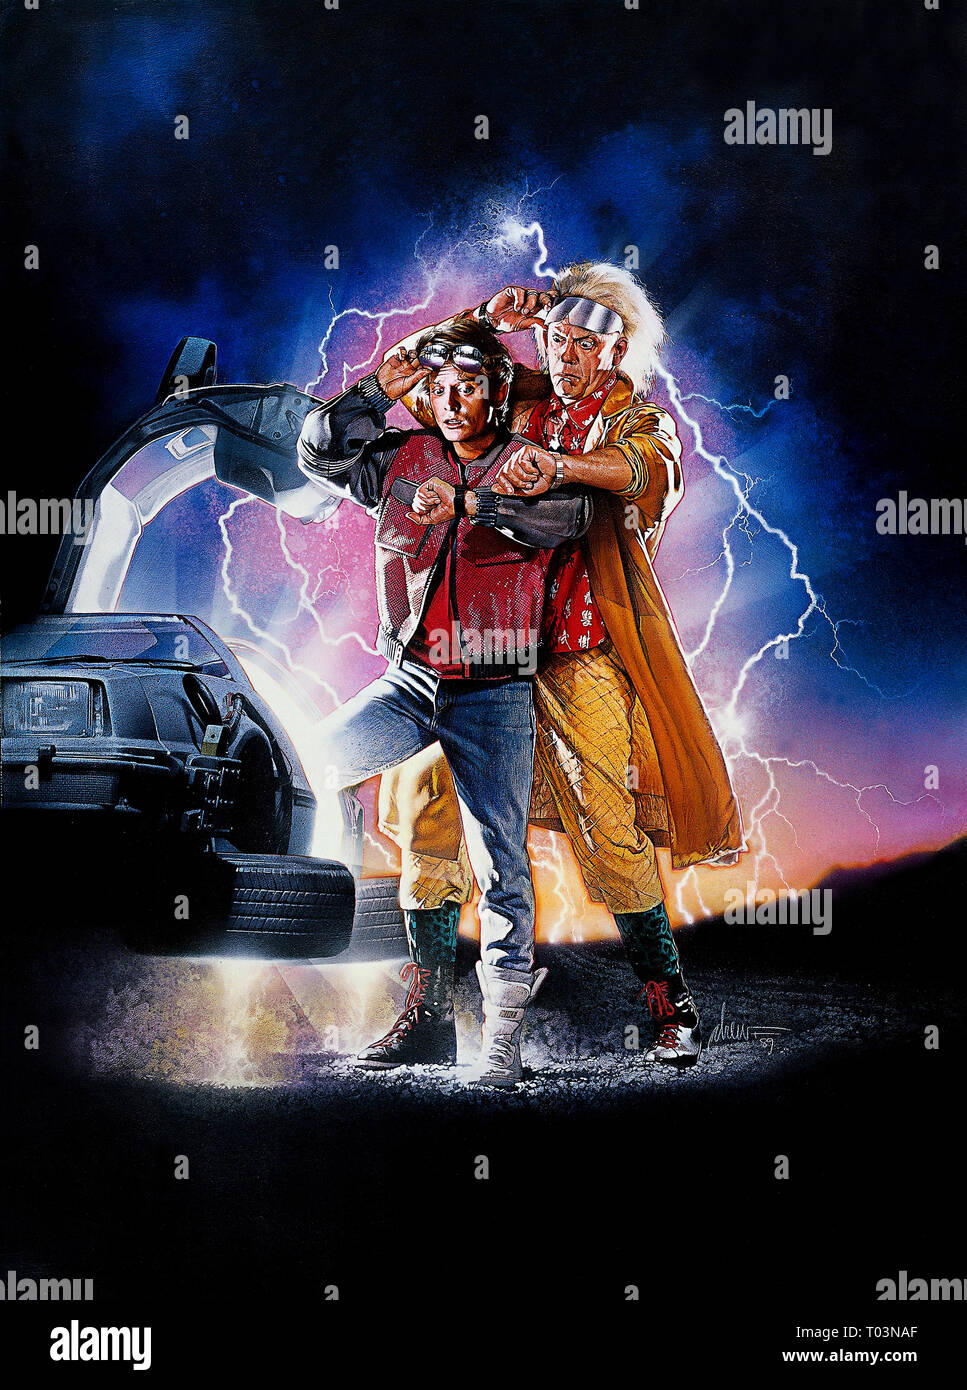 Movie Poster Back To The Future Part Ii 1989 Stock Photo Alamy